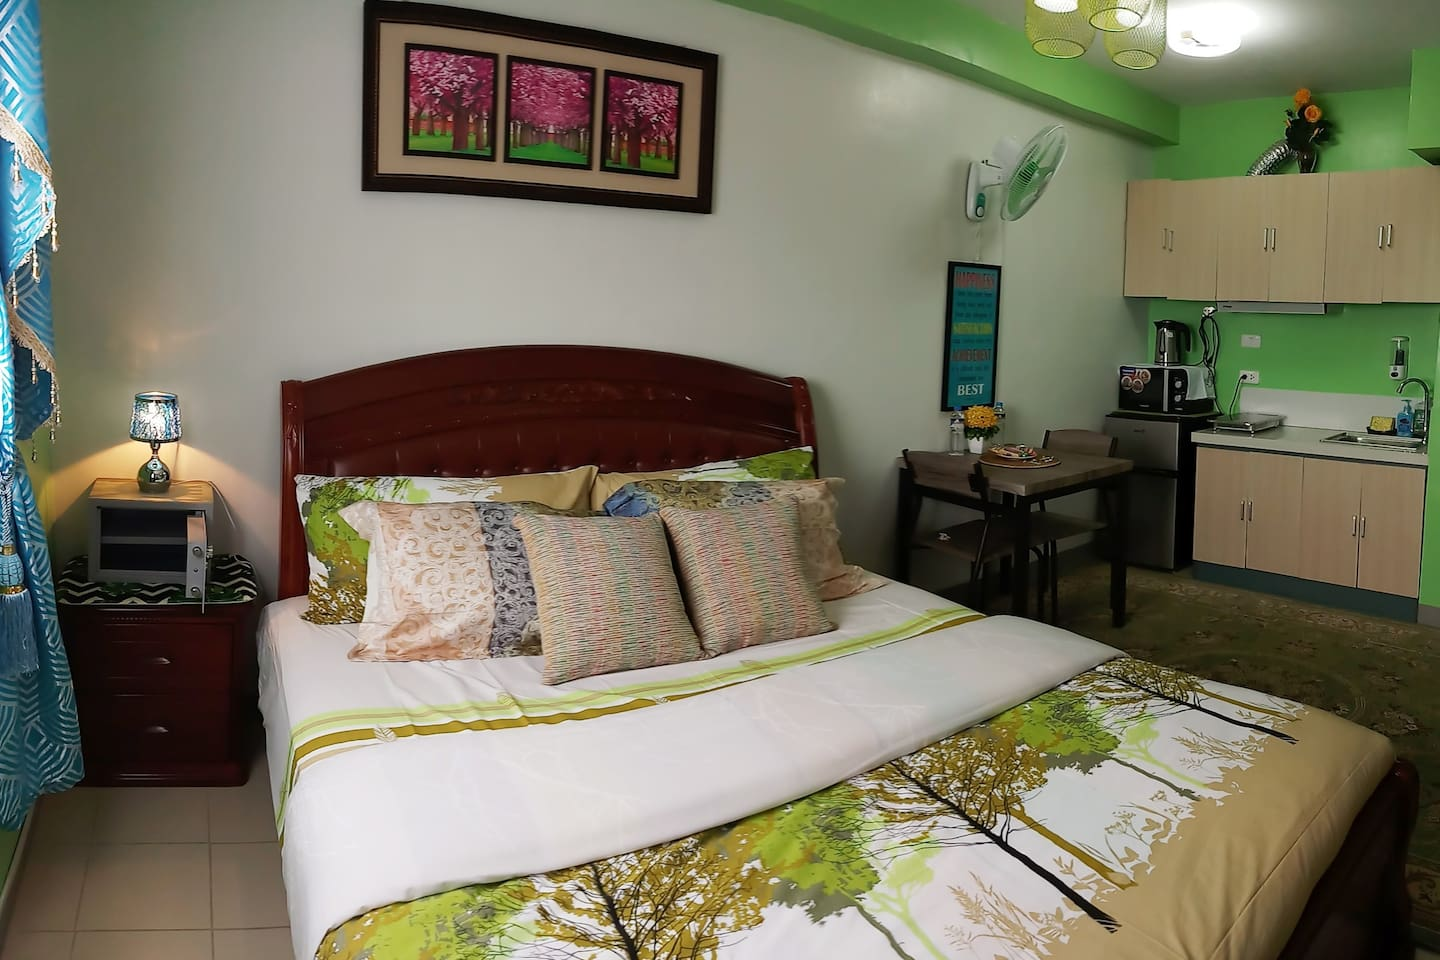 With Super comfortable king size(biggest) bed and beddings.